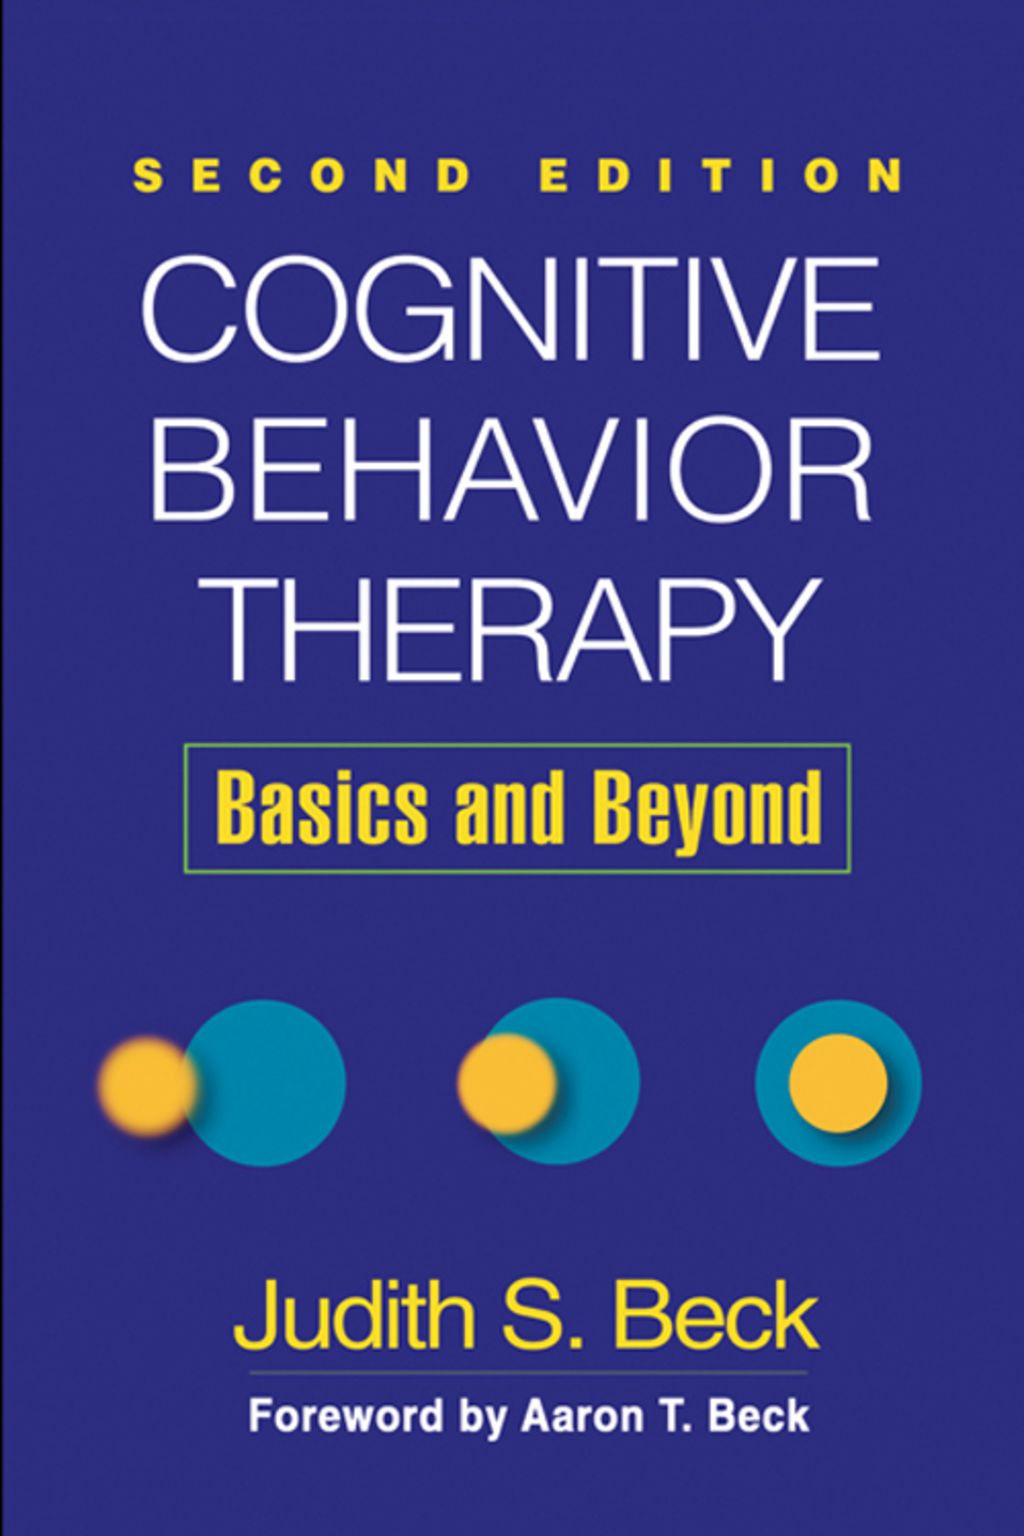 Cognitive Behavior Therapy Second Edition Ebook